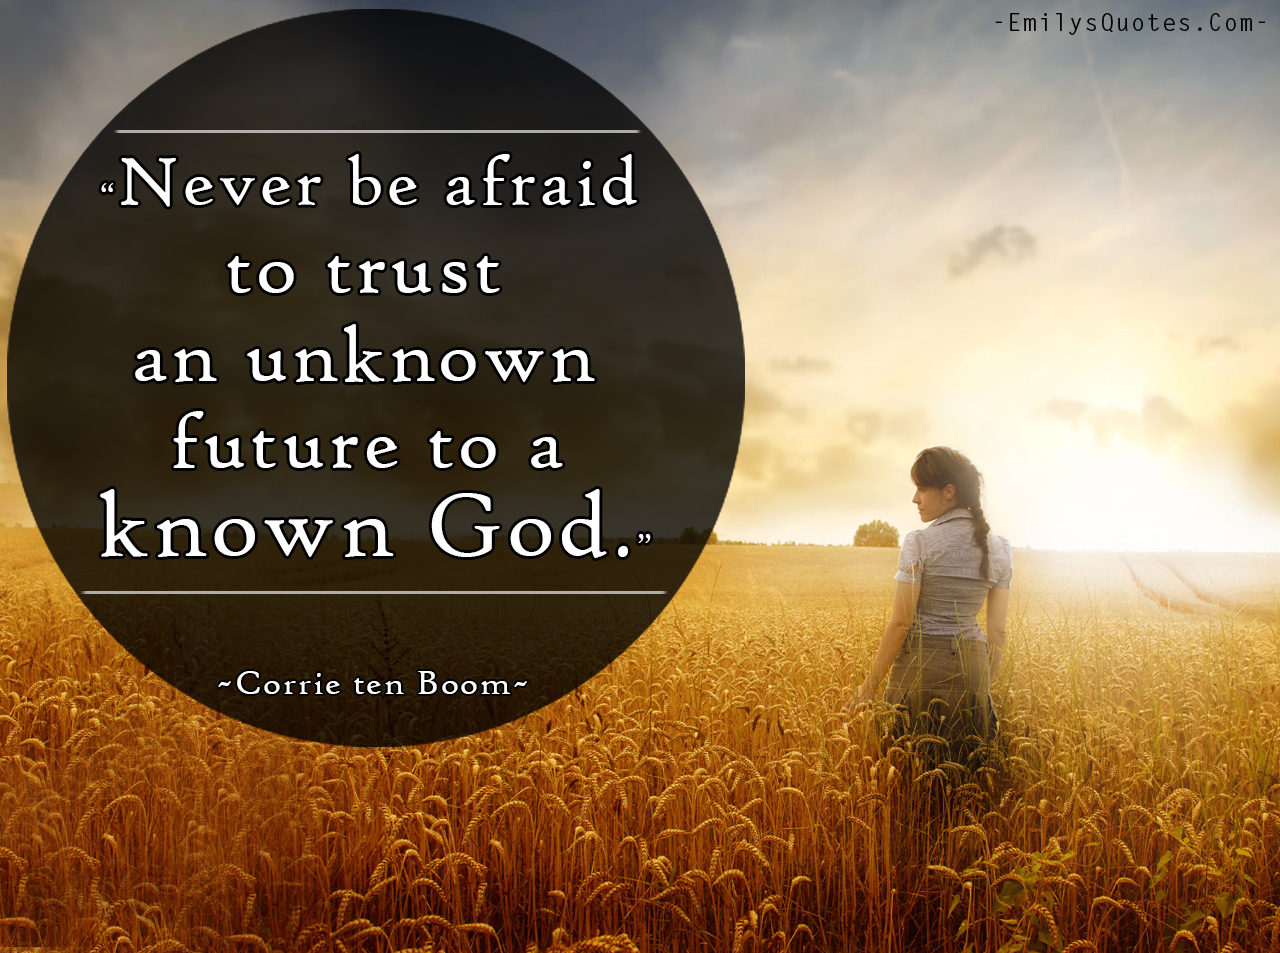 God Encouragement Quotes Never Be Afraid To Trust An Unknown Future To A Known God